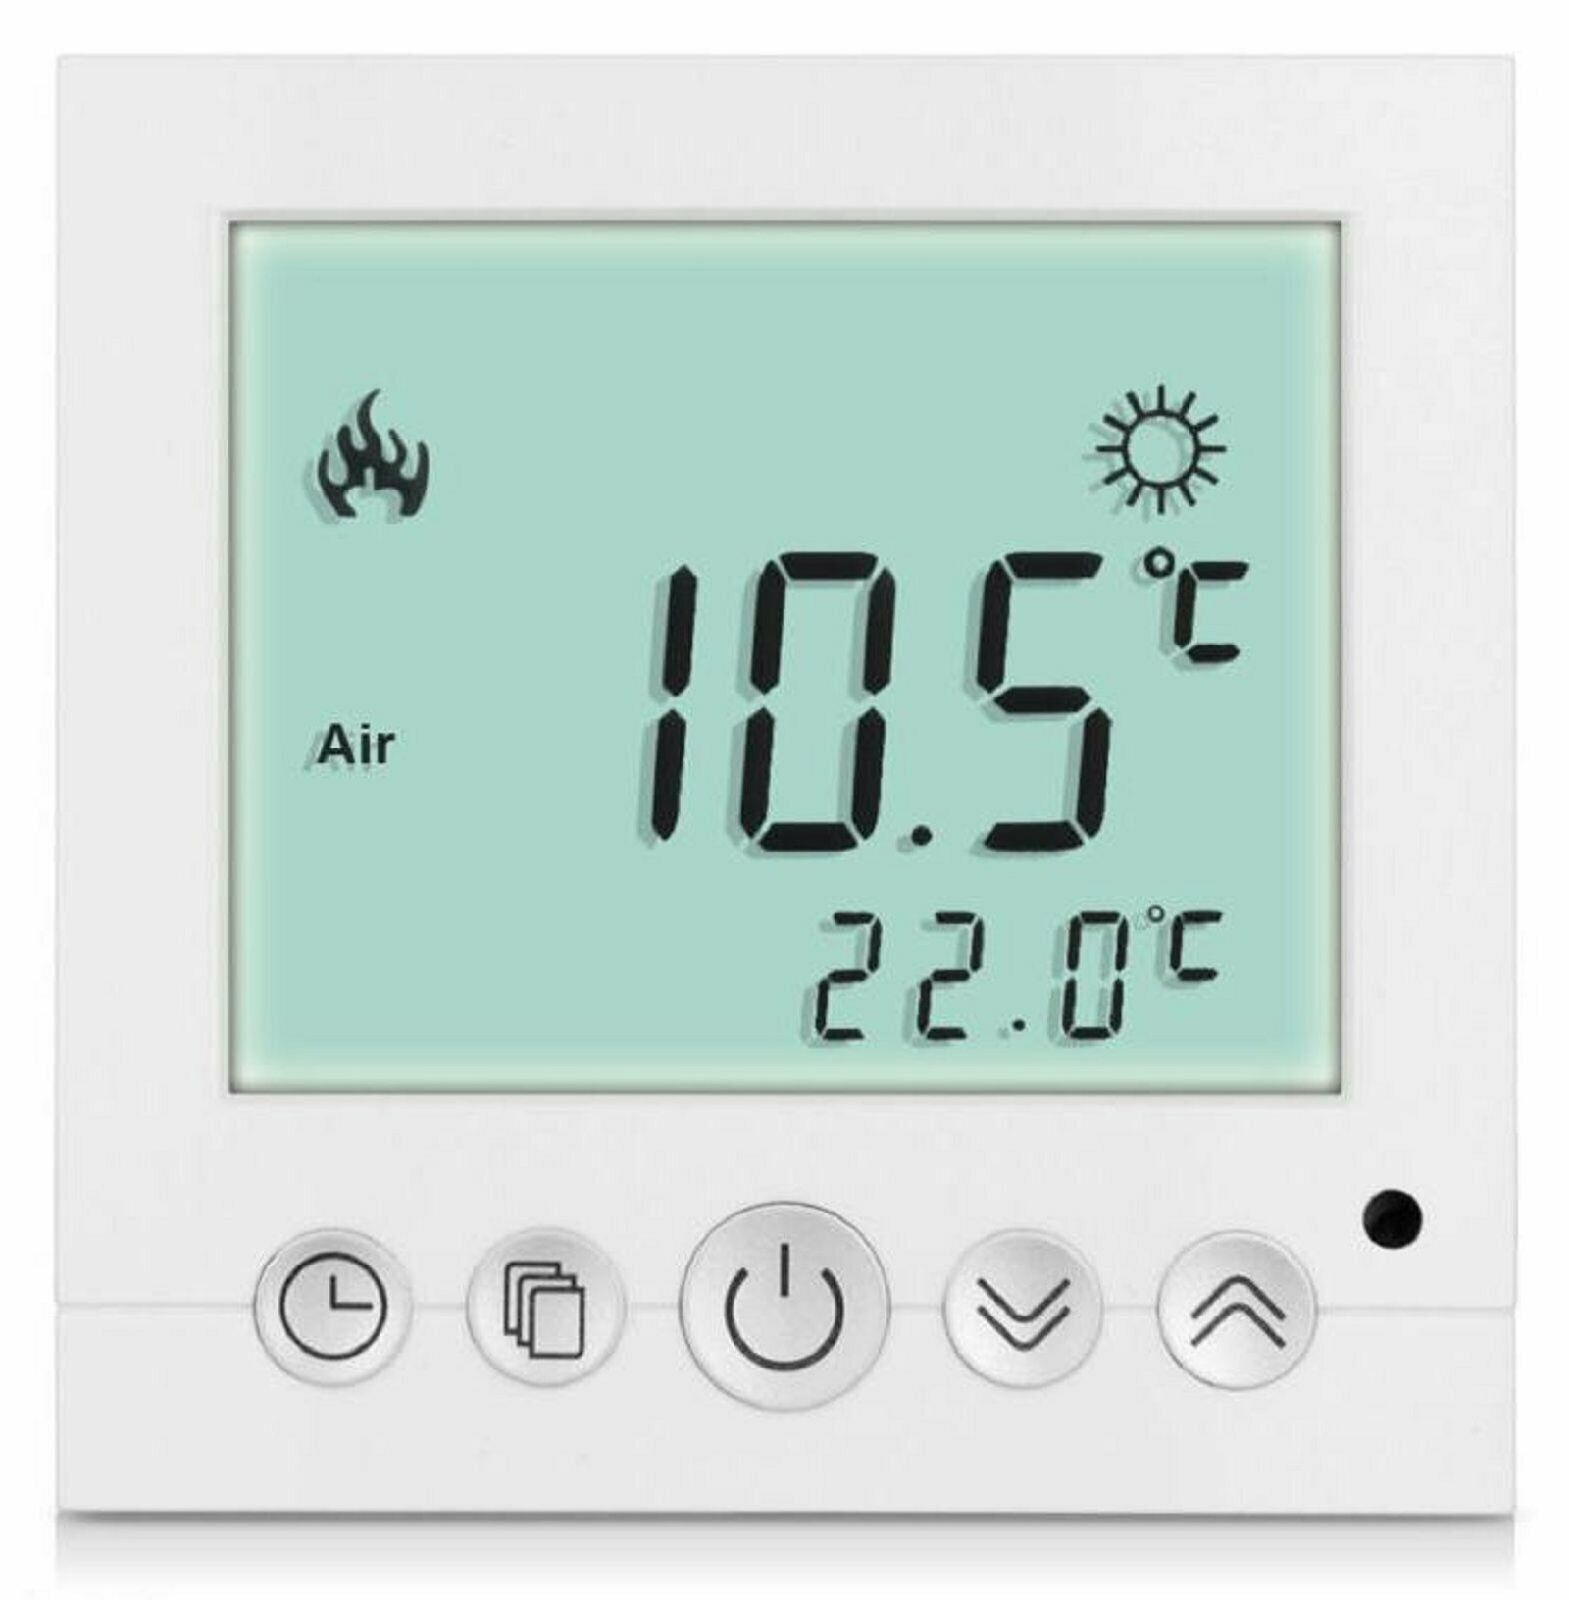 digital thermostat raumthermostat fu bodenheizung wandheizung led wei a31 eur 18 99. Black Bedroom Furniture Sets. Home Design Ideas